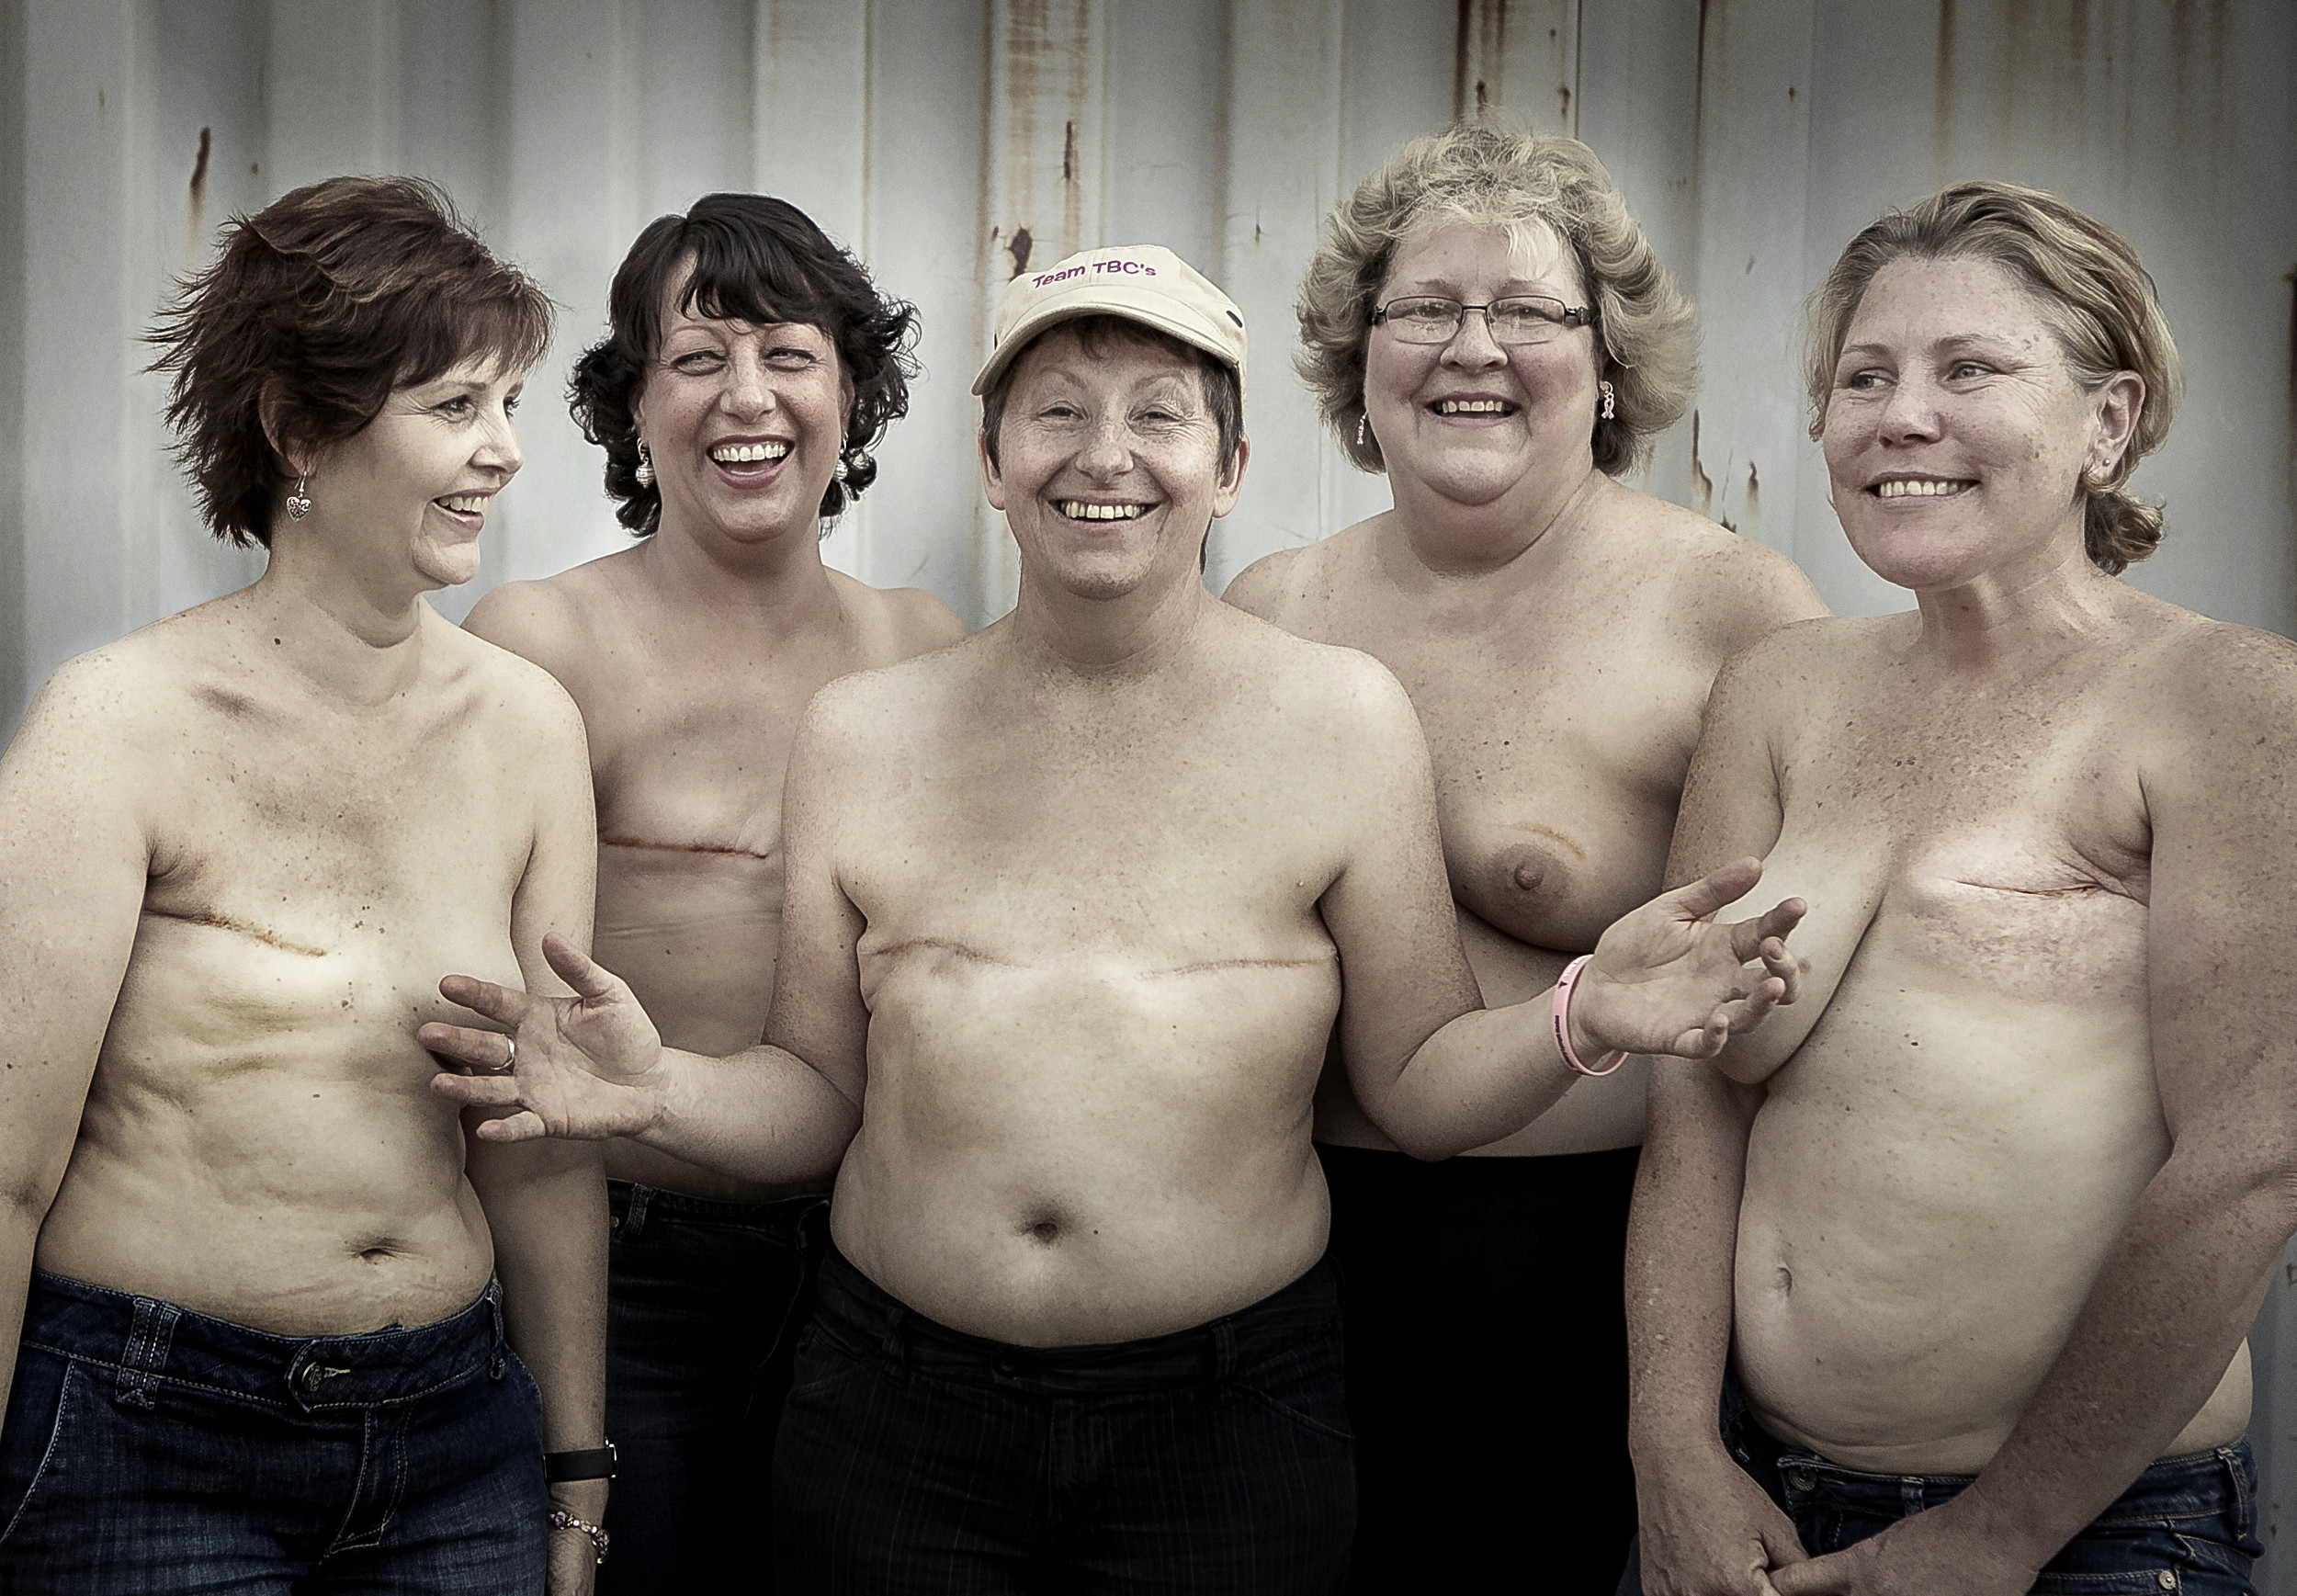 TBCs, Breast Cancer Survivors, Photograph by Suzanne McCorkell